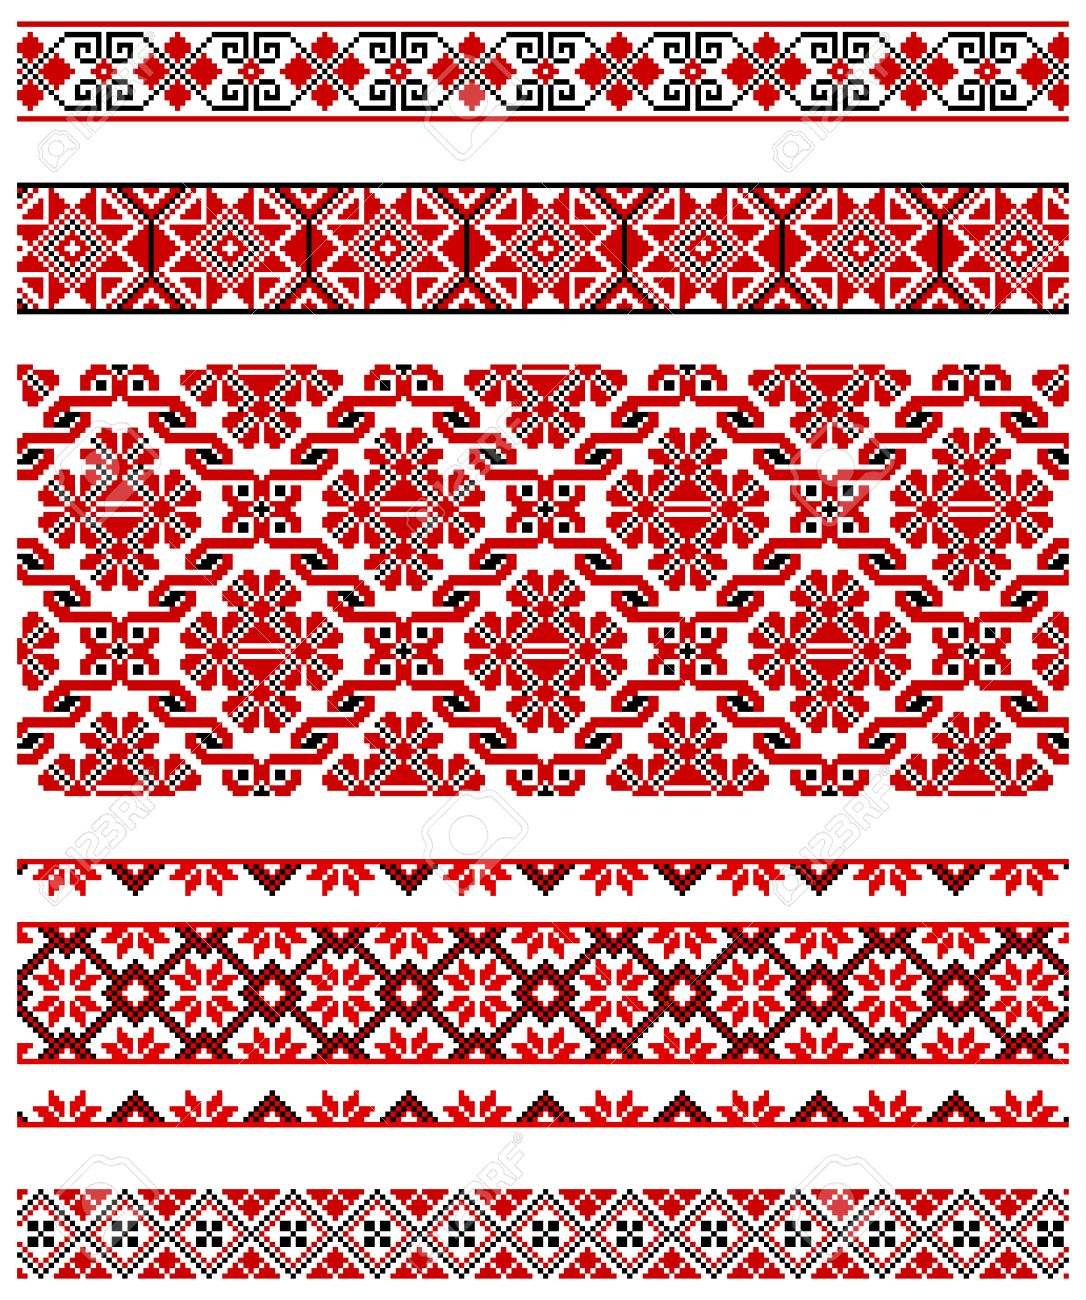 illustrations of ukrainian embroidery ornaments, patterns, frames and borders. Stock Vector - 8877450